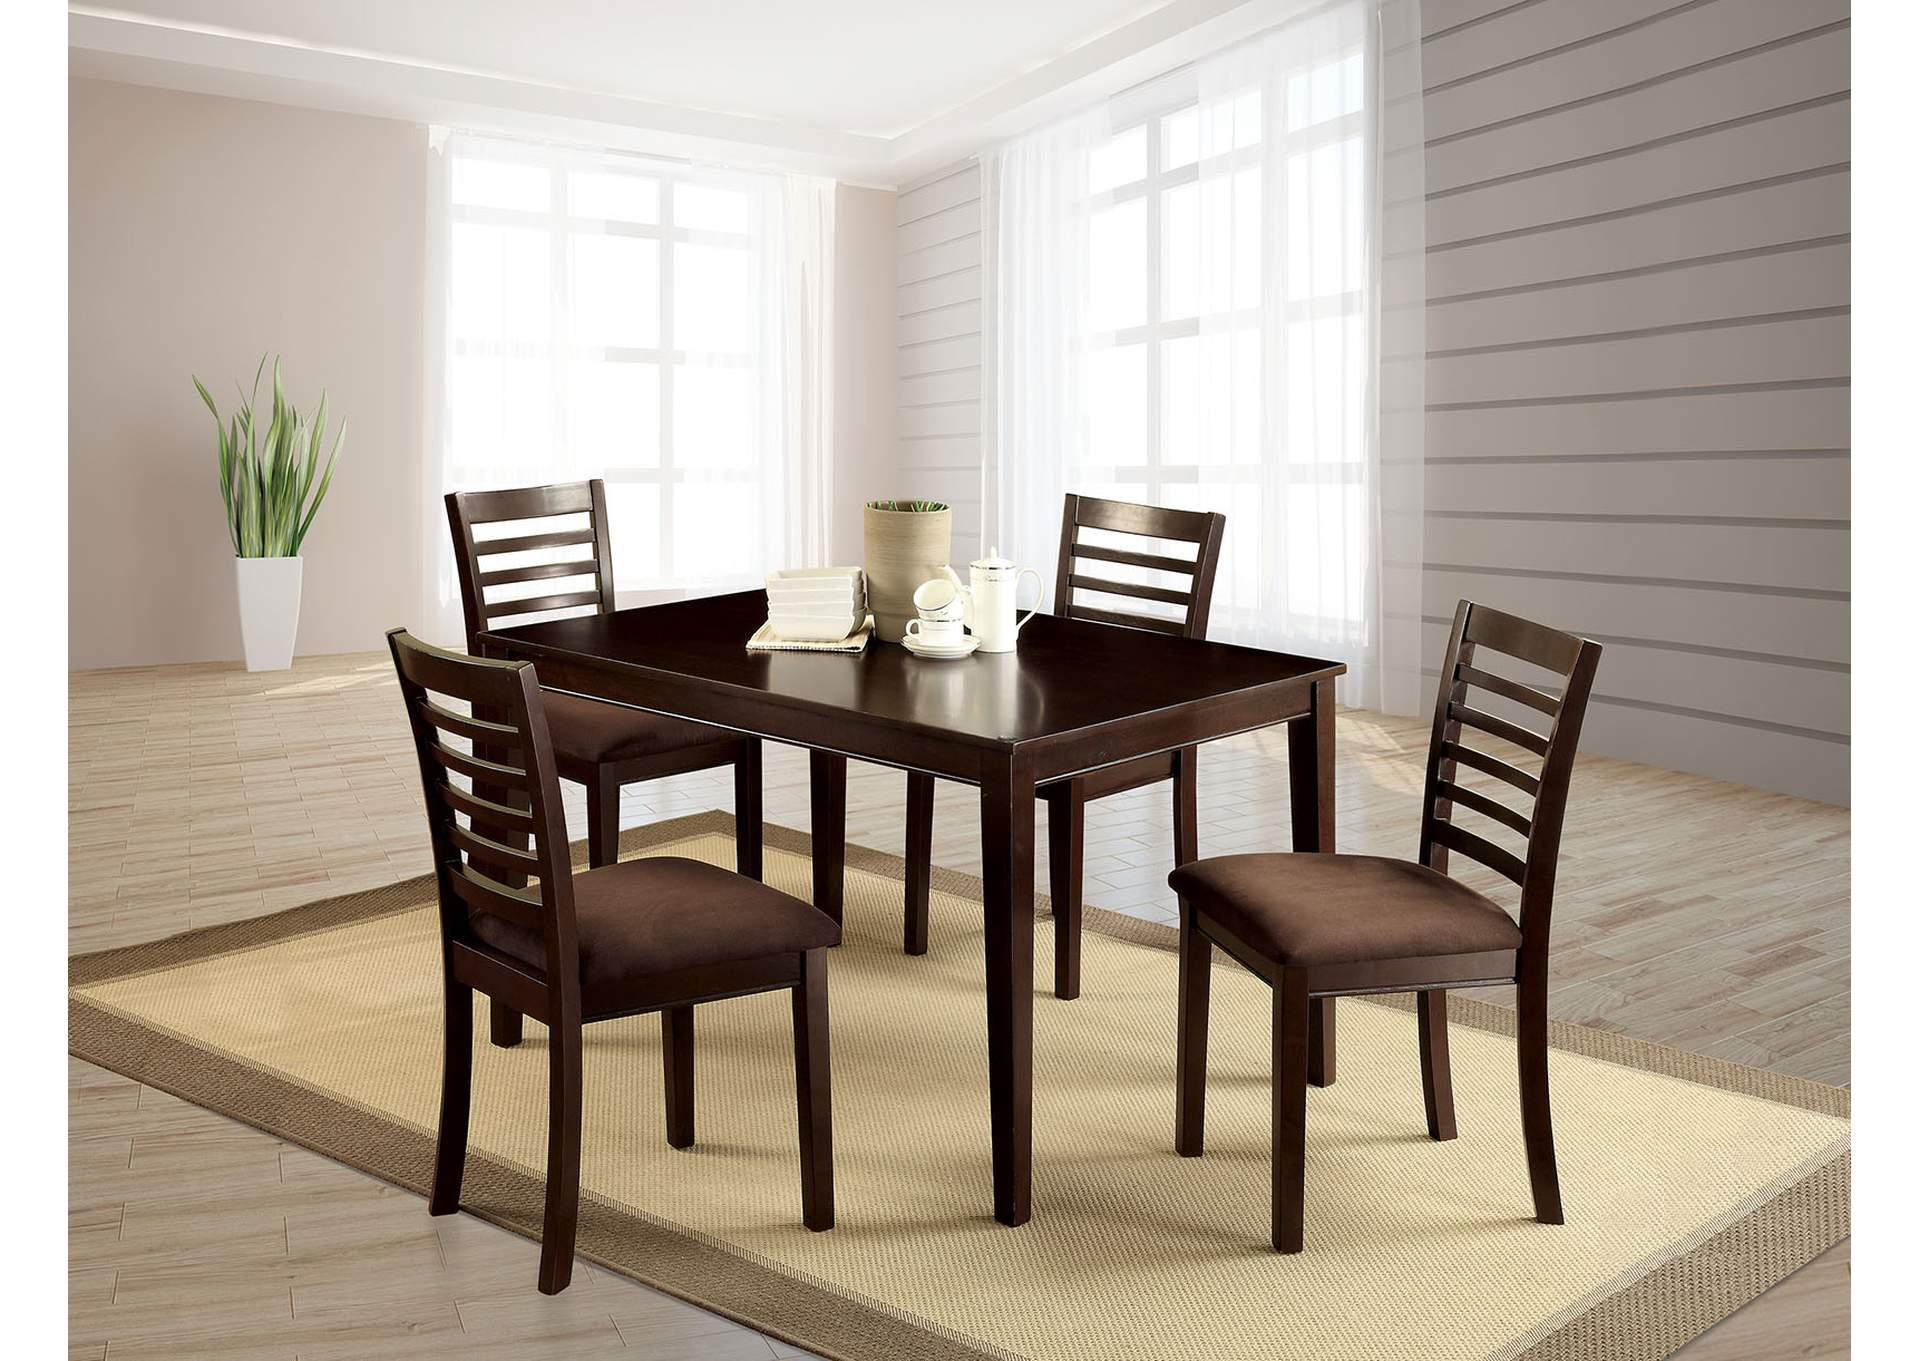 Eaton I Espresso 5 Pc Dining Table Set,Furniture of America